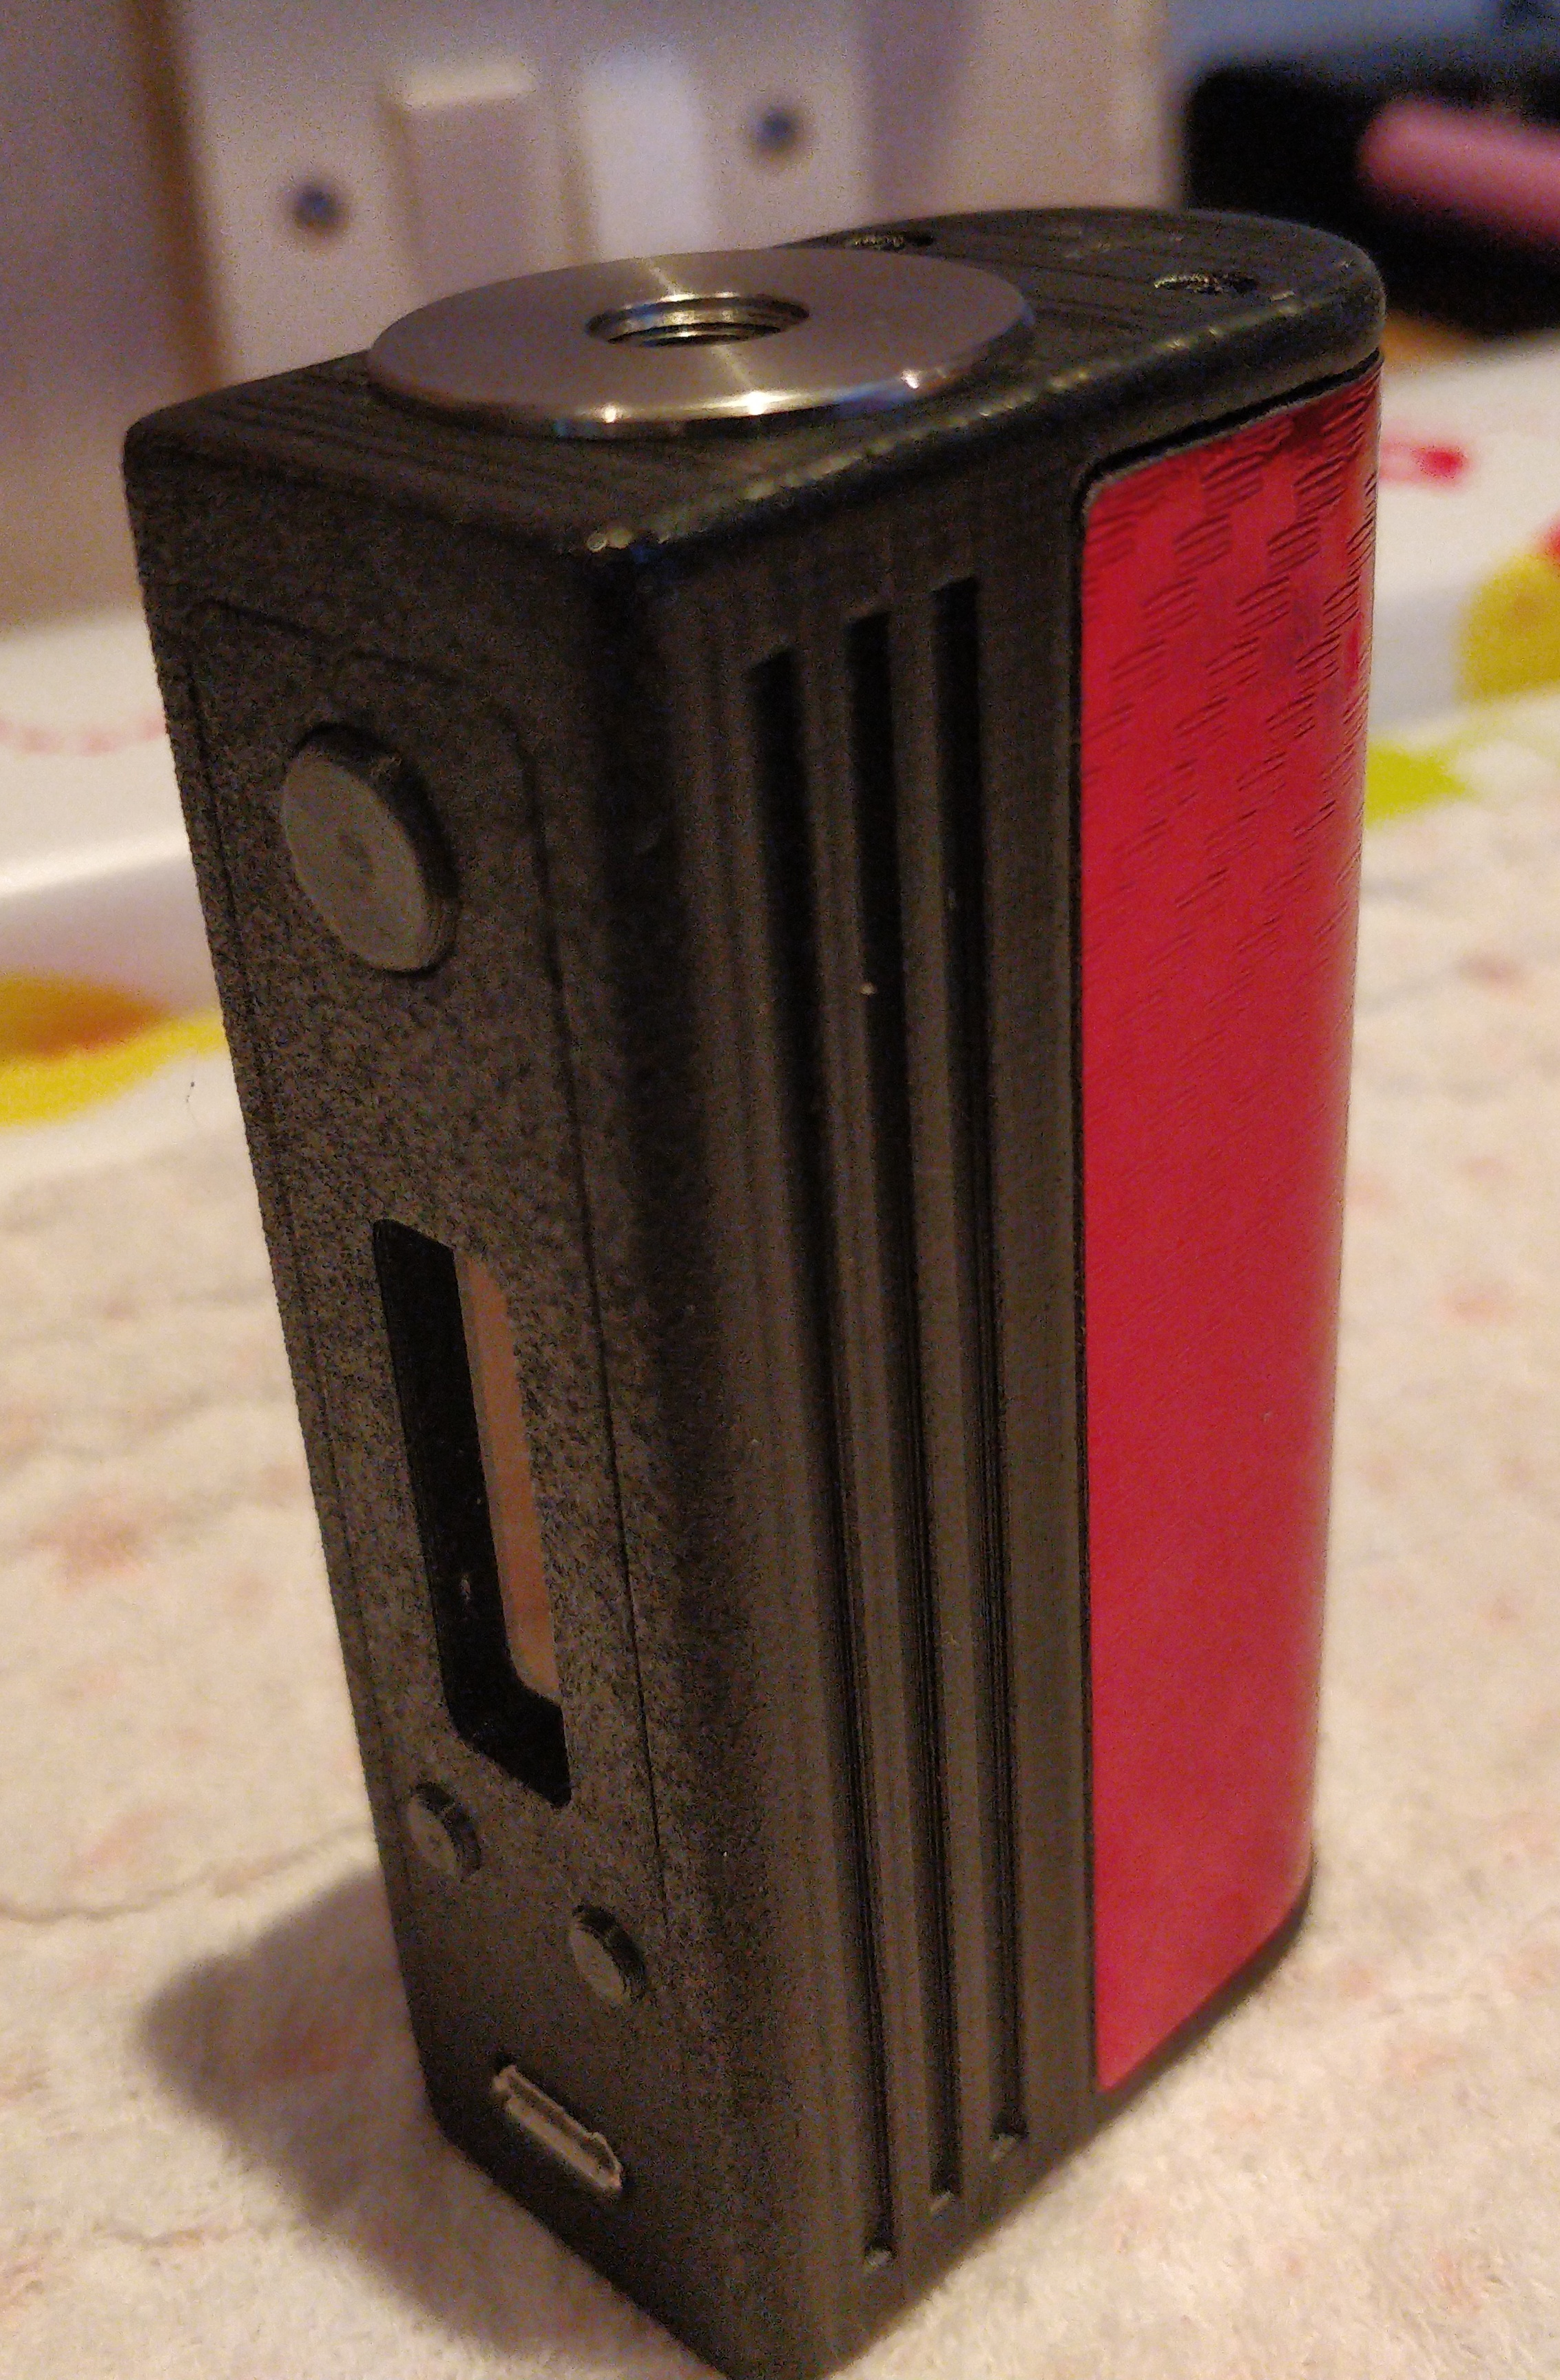 Another 3d printed mod | Vaping Forum - Planet of the Vapes